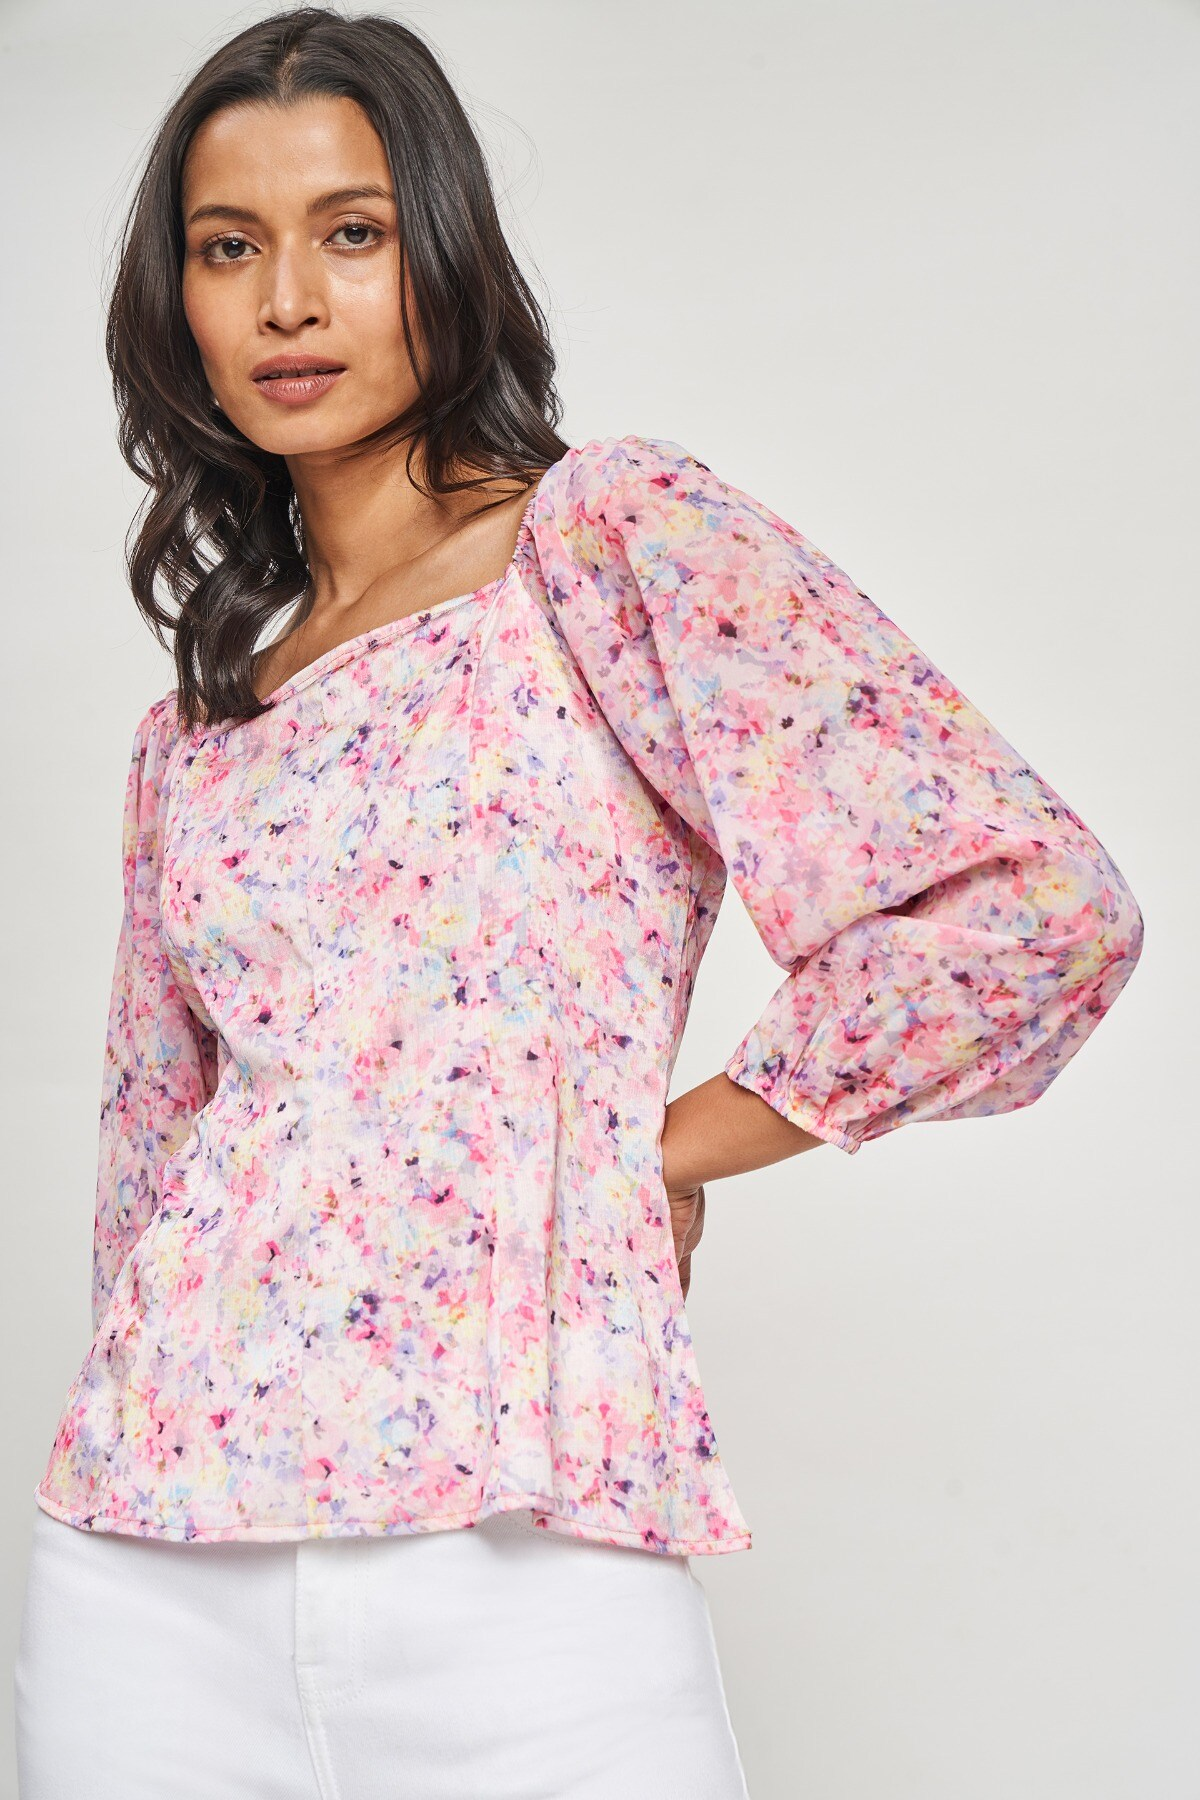 AND   Multi Color Floral Printed Fit And Flare Top